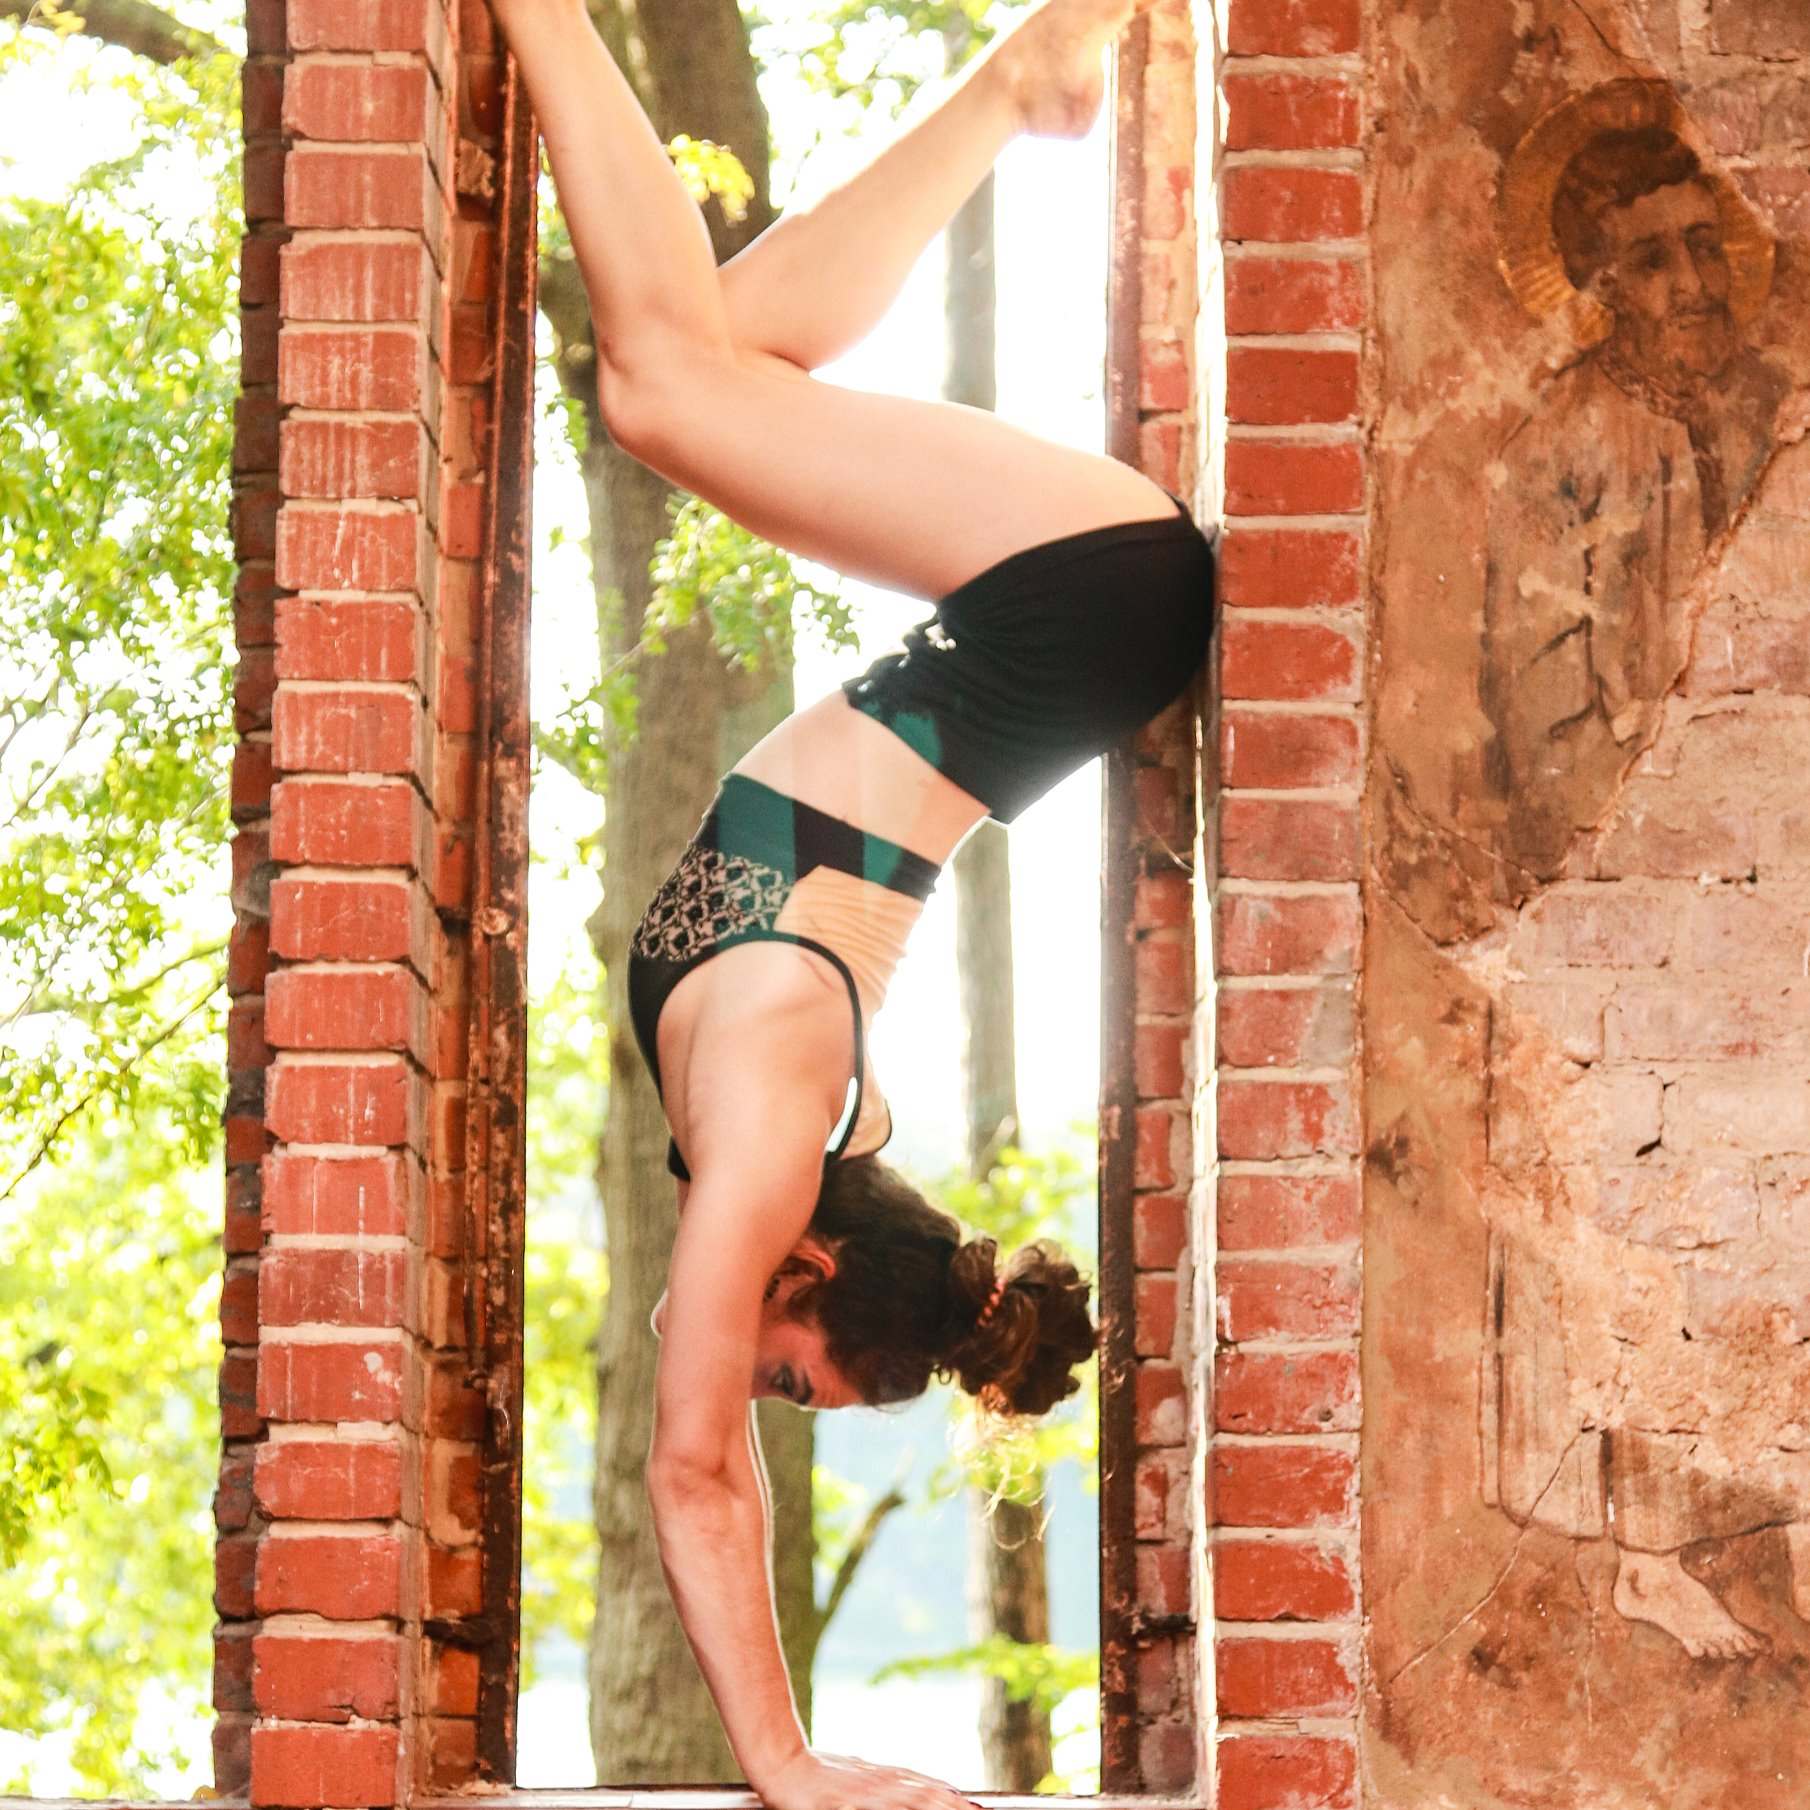 Handstand%20(13)_edited